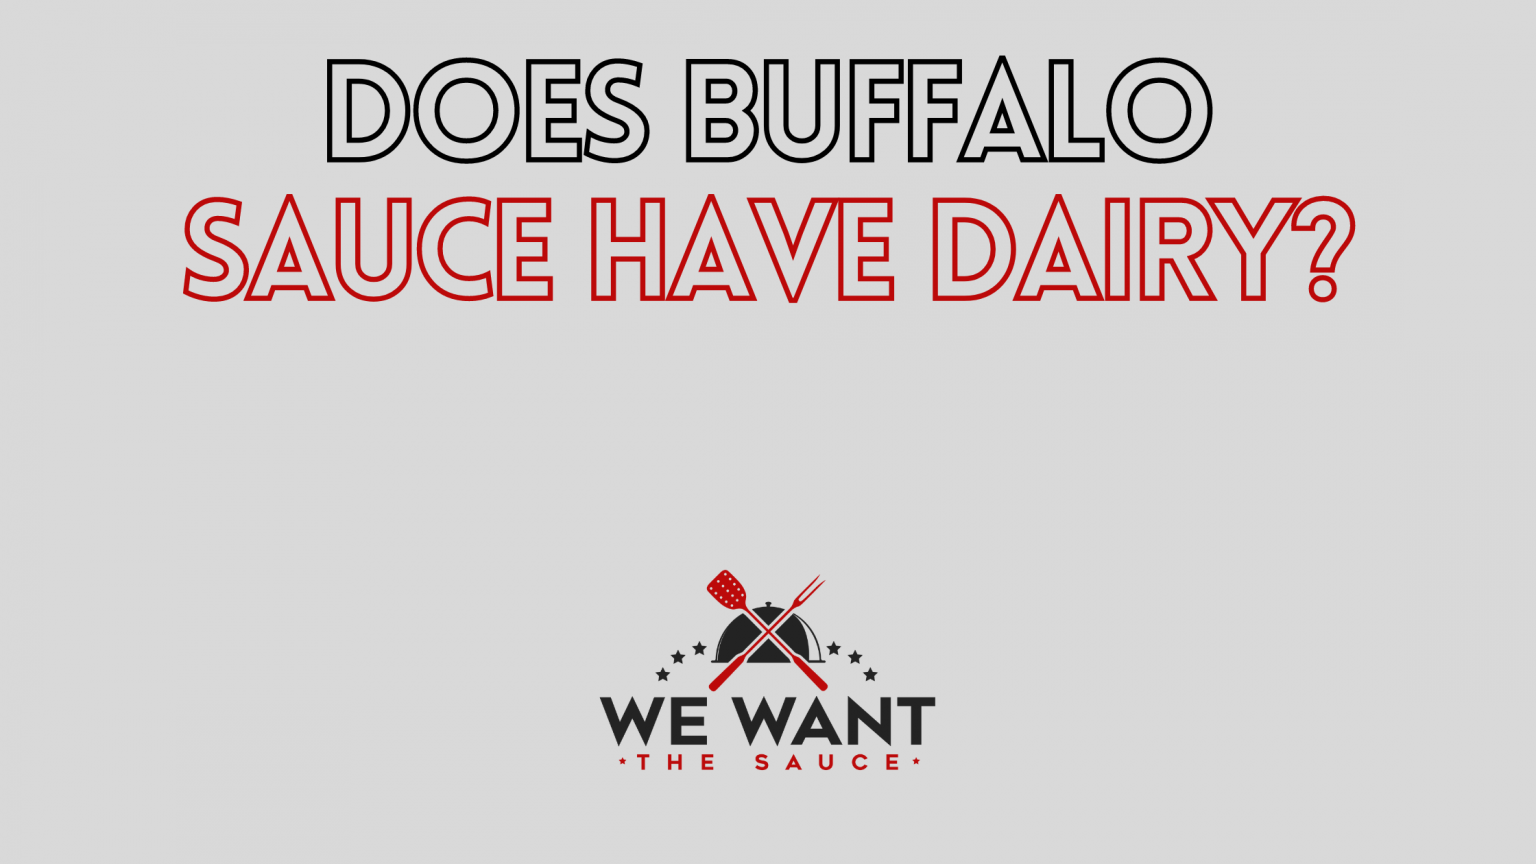 Does Buffalo Sauce Have Dairy?